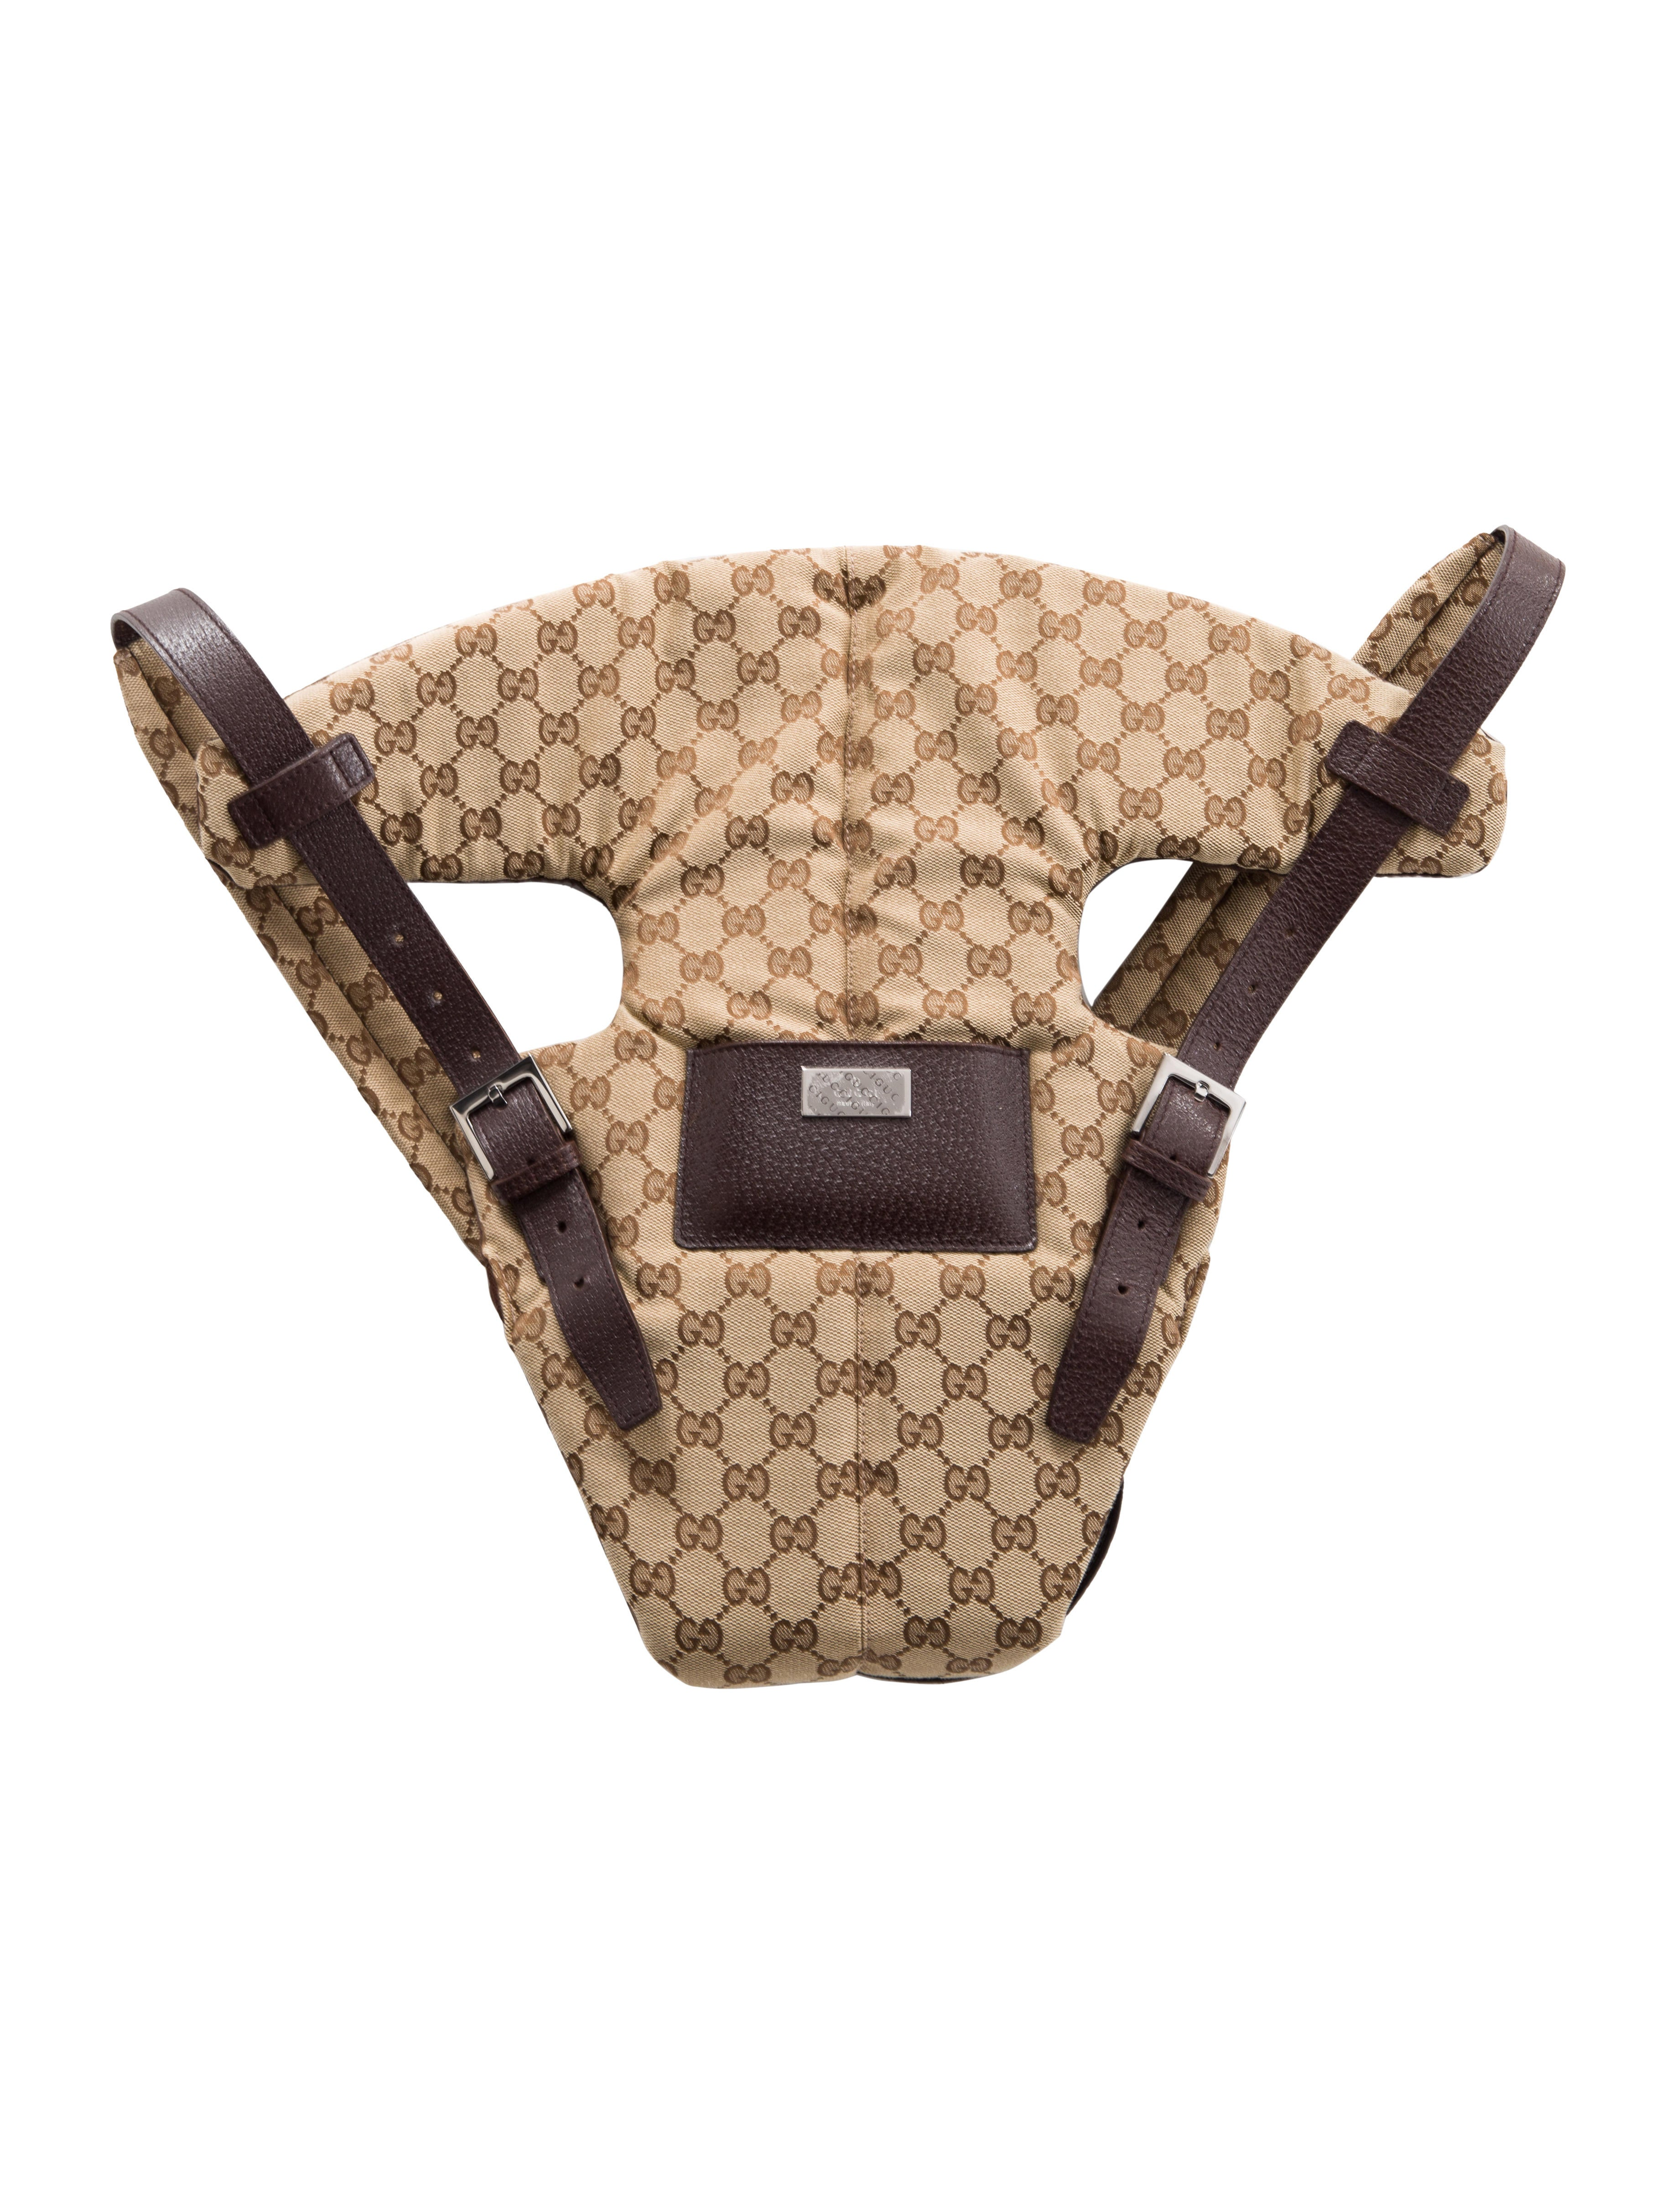 Gucci GG Canvas Baby Carrier - Baby Gear - GUC267458